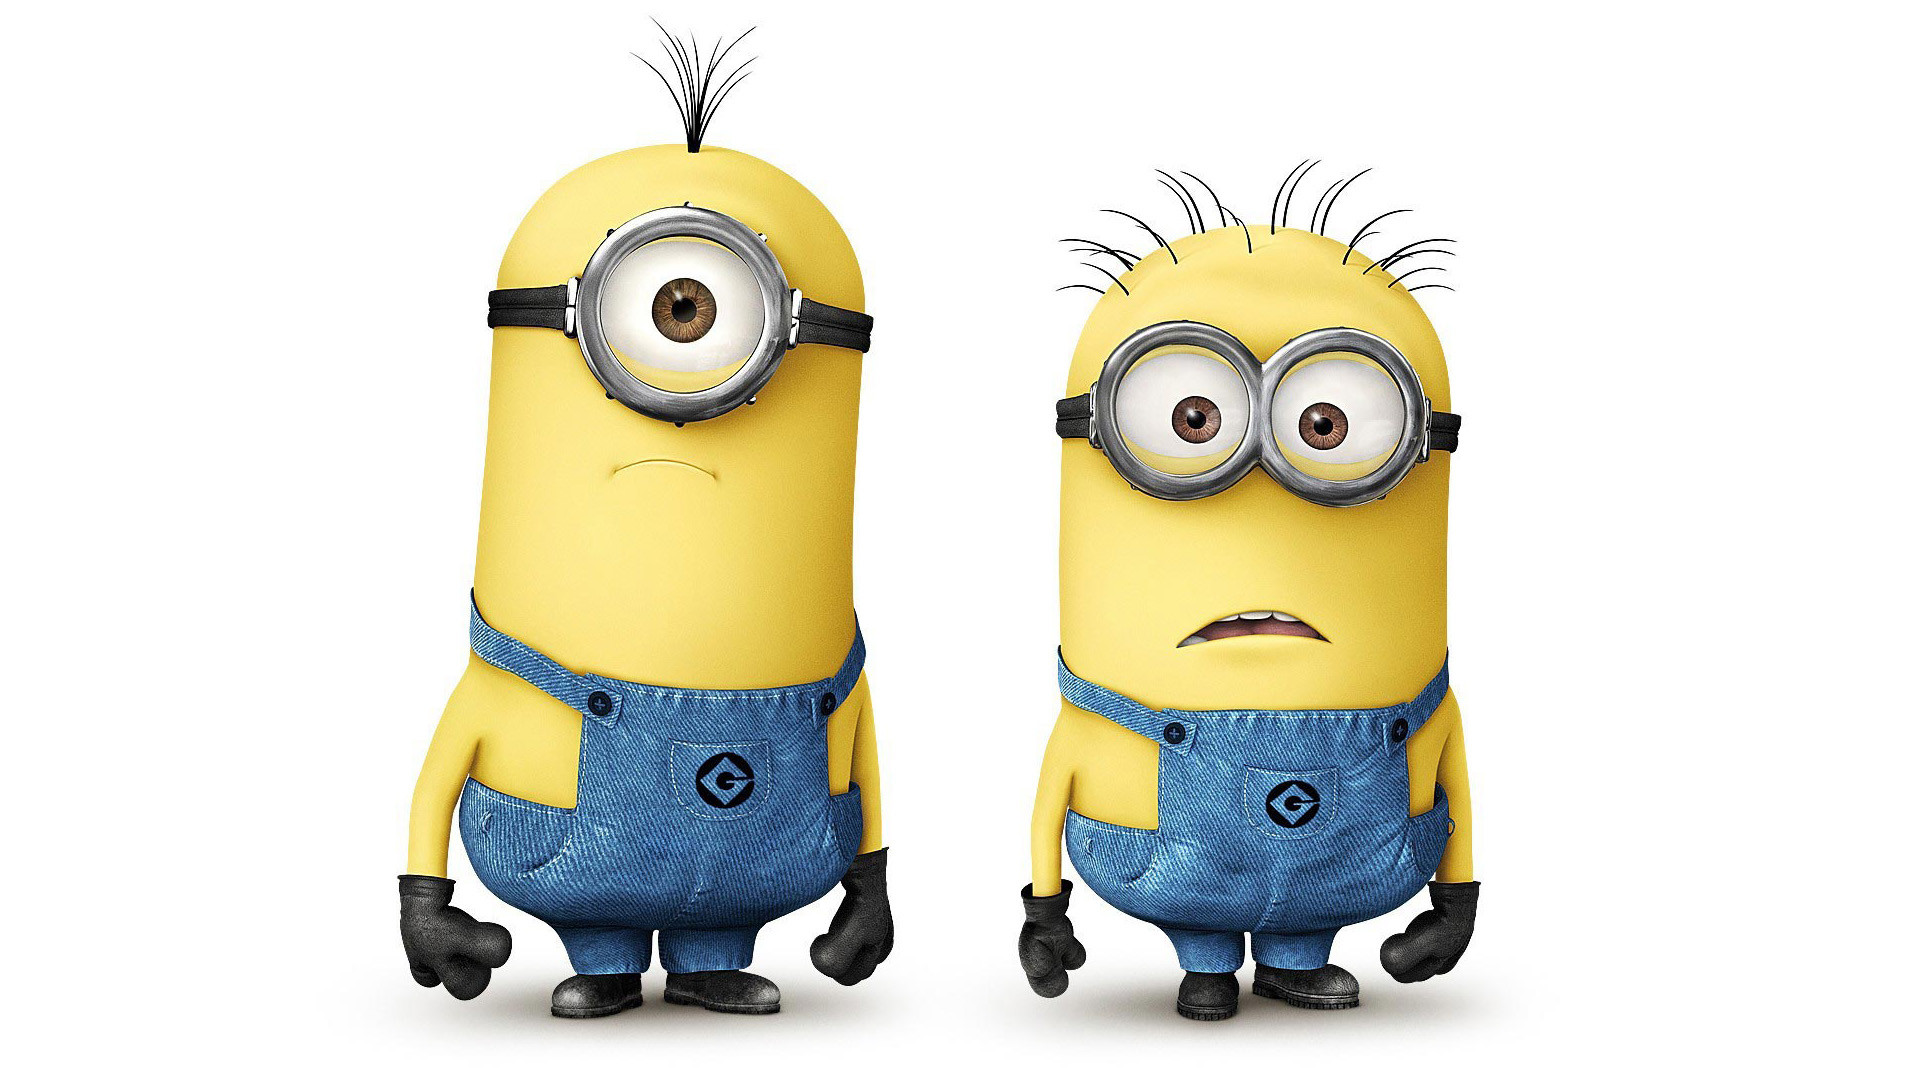 1920x1080 minions hd wallpapers for iphone 6 minions hd wallpapers for iphone 6